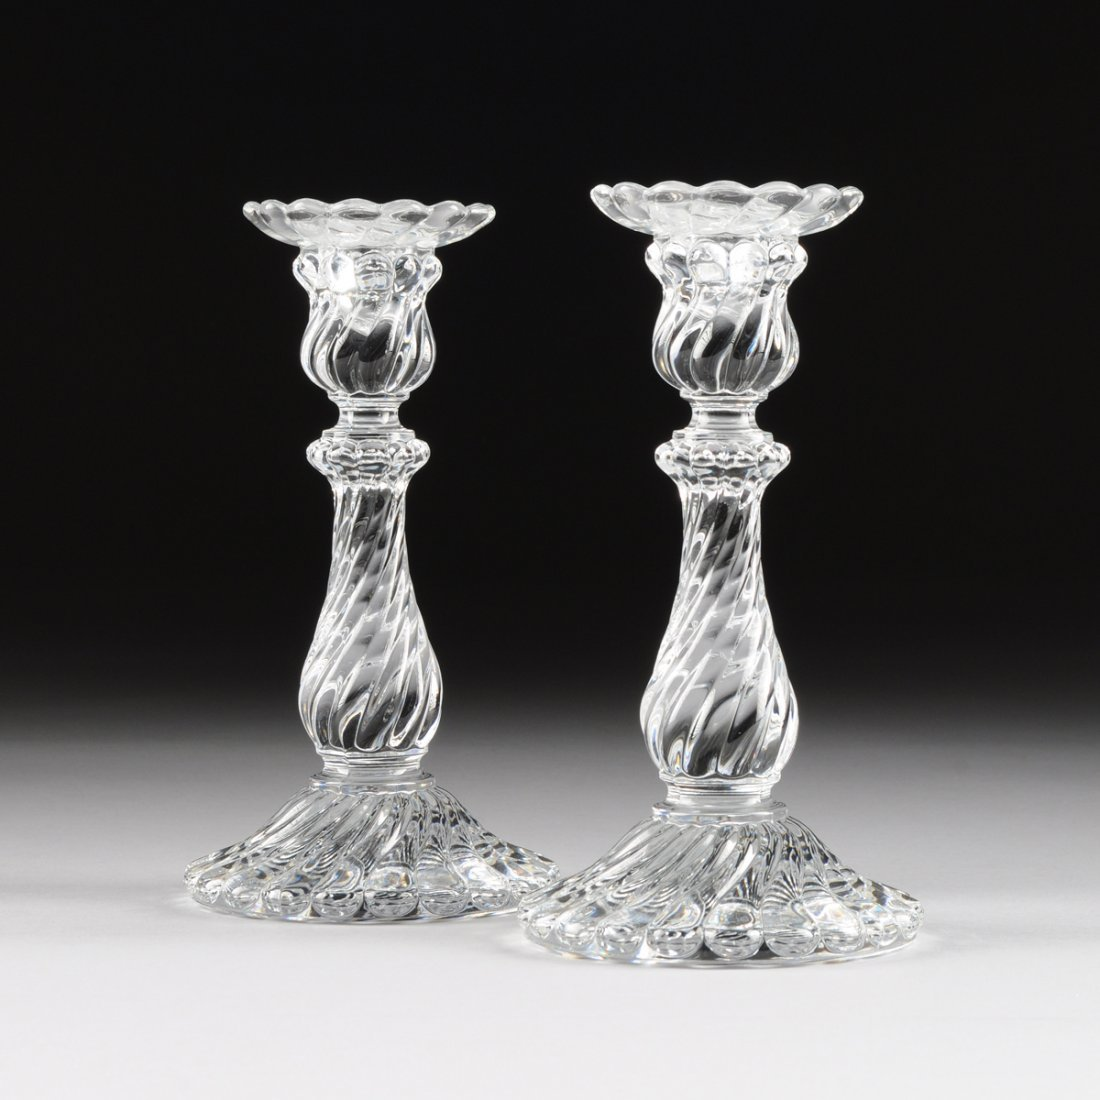 A PAIR OF BACCARAT MOLDED CLEAR CRYSTAL CANDLESTICKS,